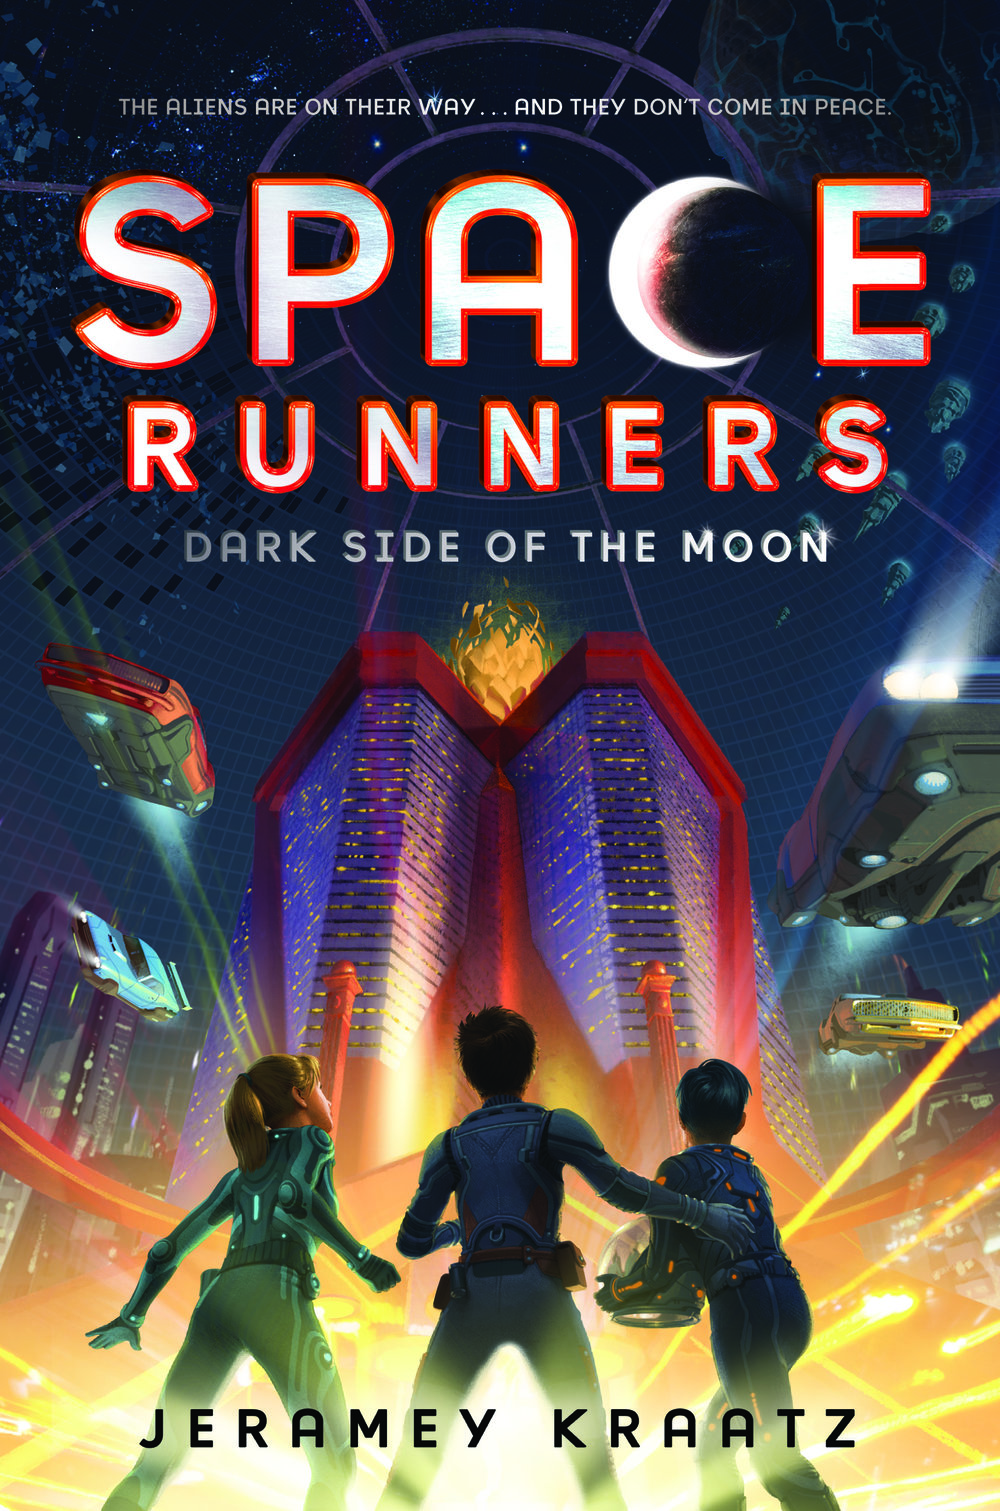 The story continues... - SPACE RUNNERS #2: DARK SIDE OF THE MOON is out now, and the flying cars only get faster in SPACE RUNNERS #3: THE COSMIC ALLIANCE (catch it on 11/13/2018)!